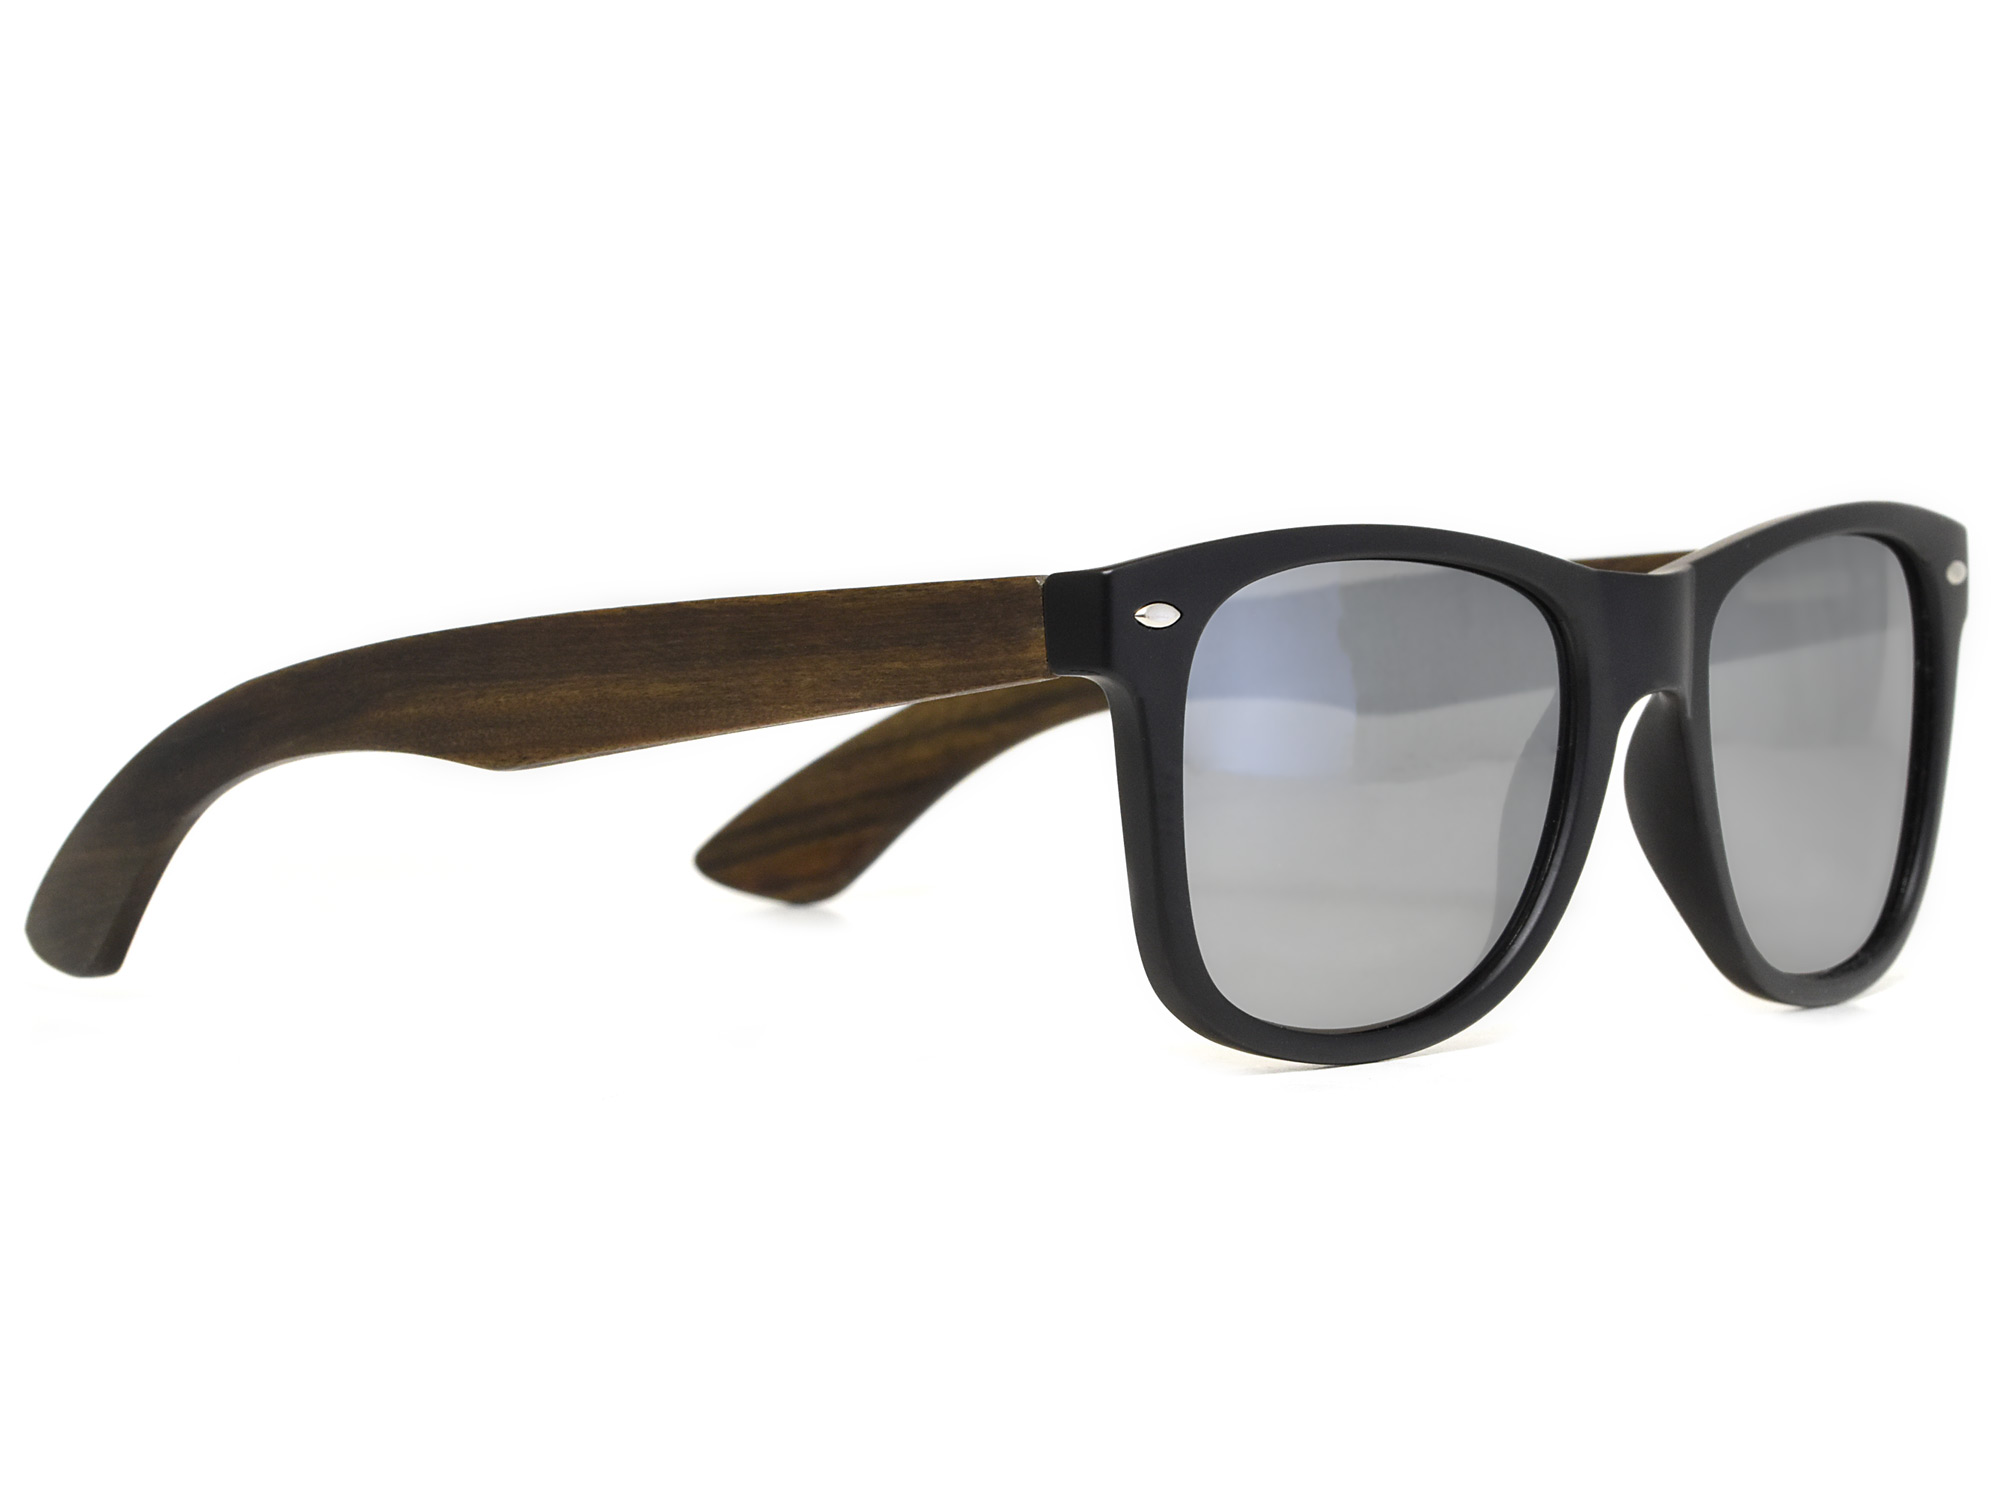 Ebony wood sunglasses with silver mirrored lenses right